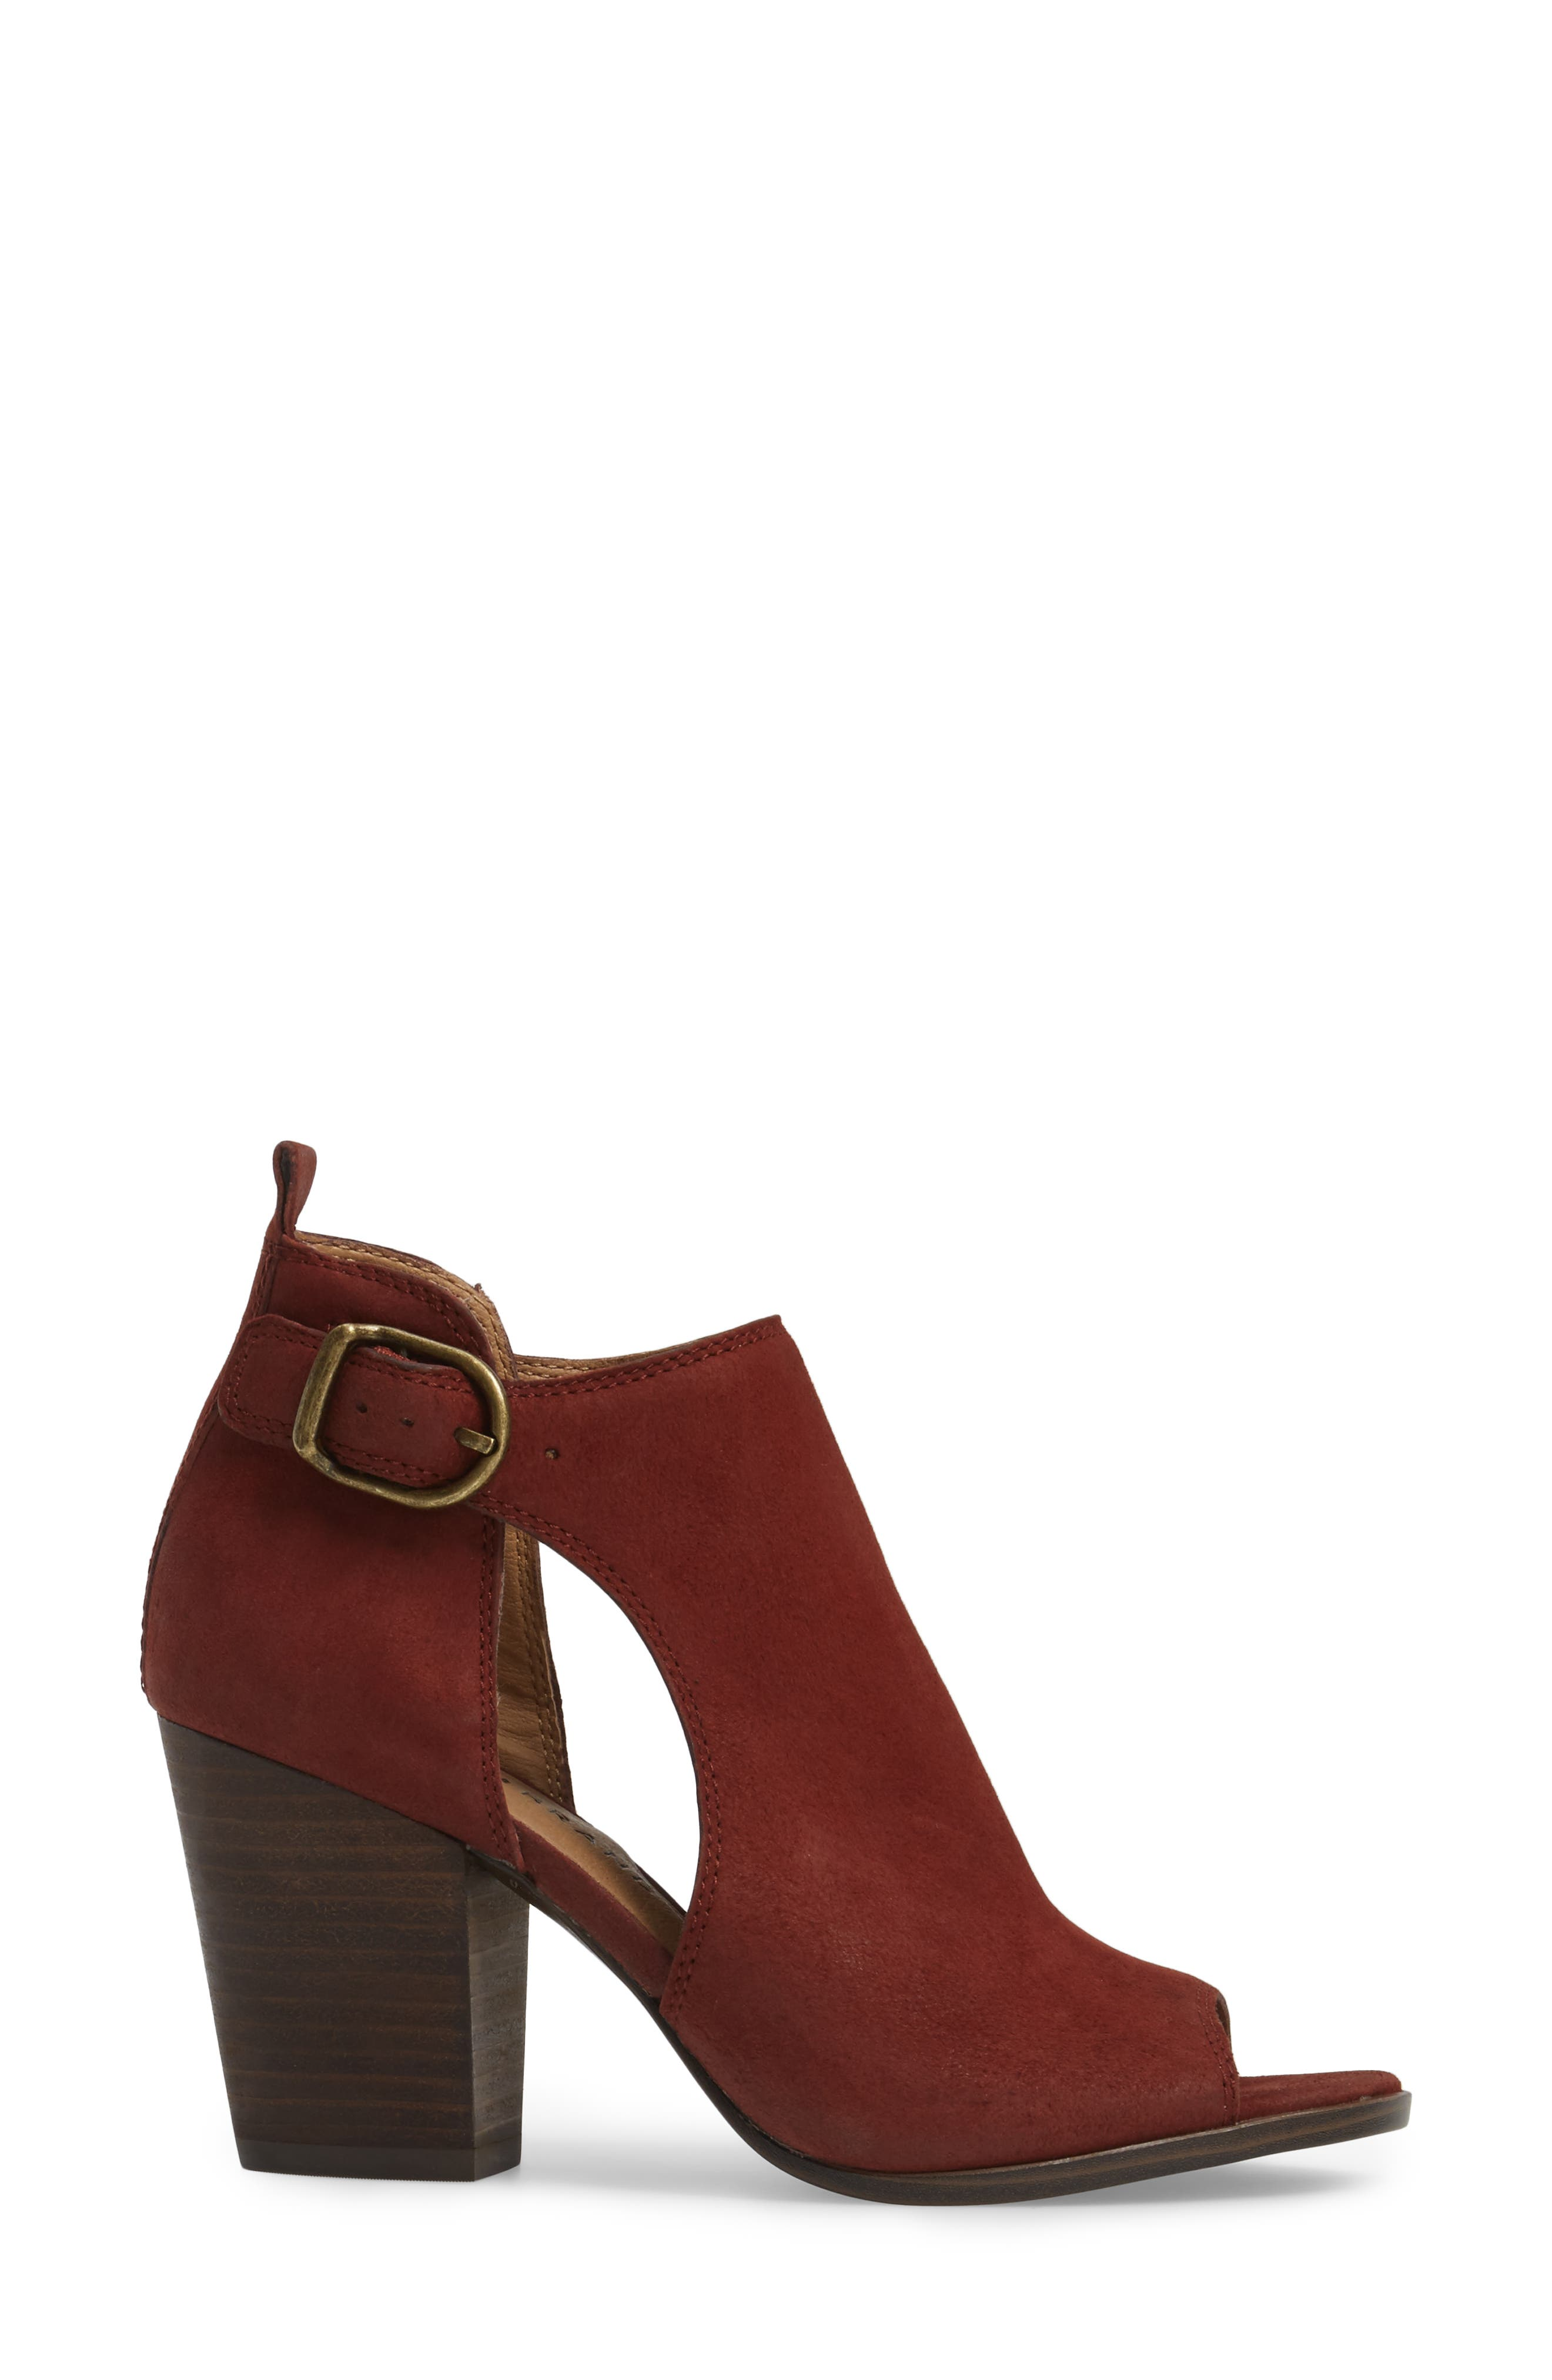 Oona Open Side Bootie,                             Alternate thumbnail 3, color,                             Sable Leather